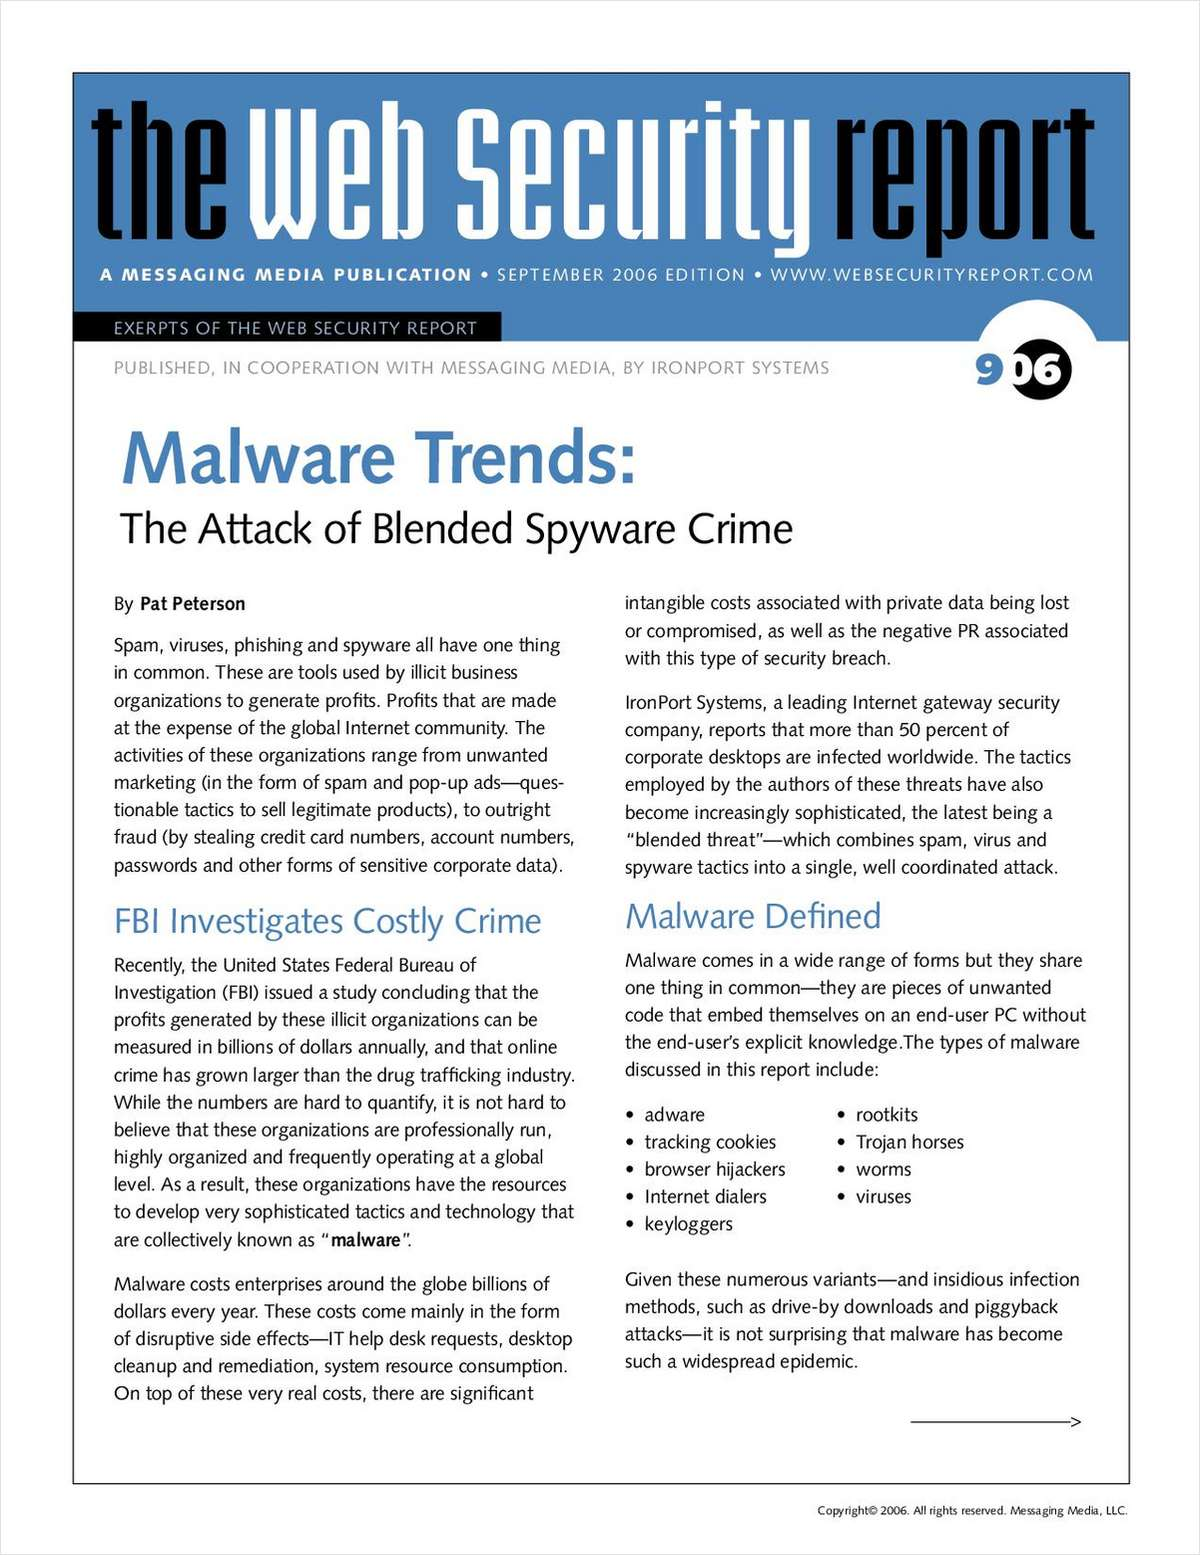 Web Security Report: The Attack of Blended Spyware Crime